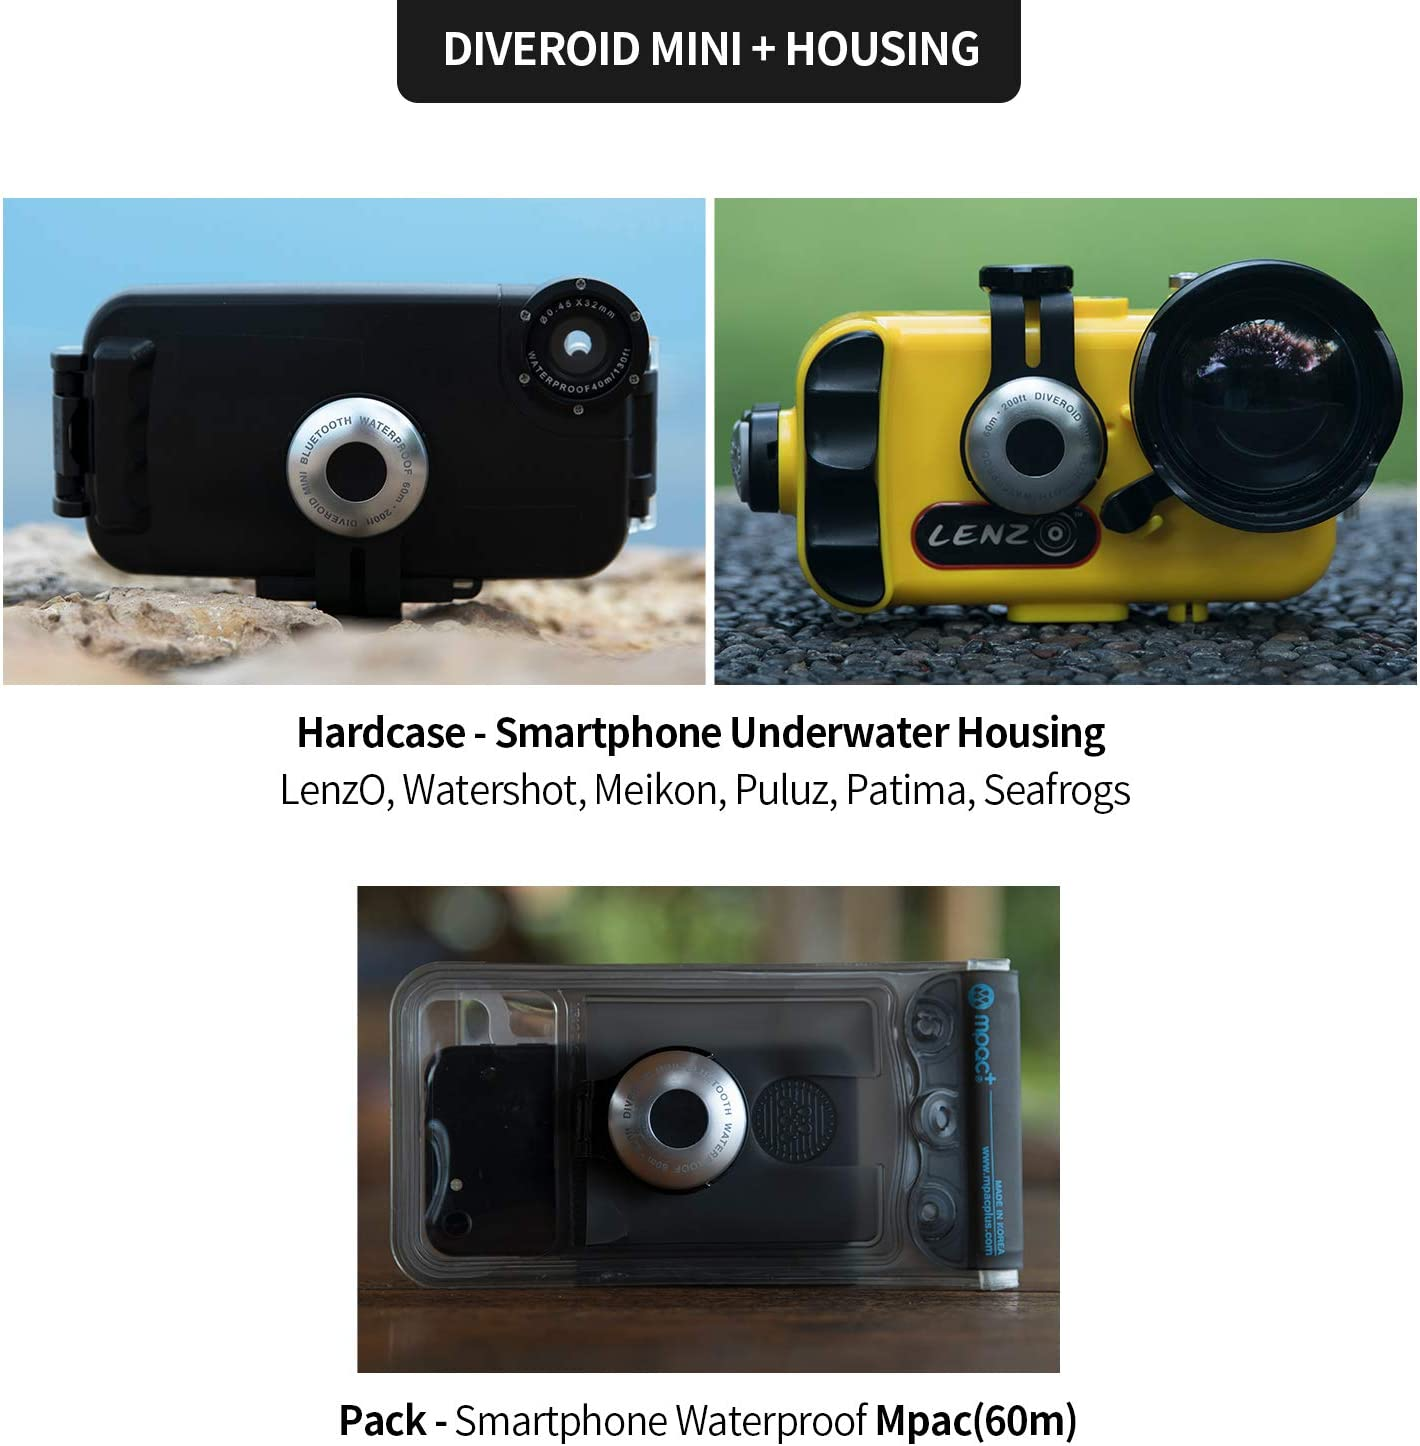 logbook Camera and More! DIVEROID Mini Turn Your Smartphone into a Dive Computer